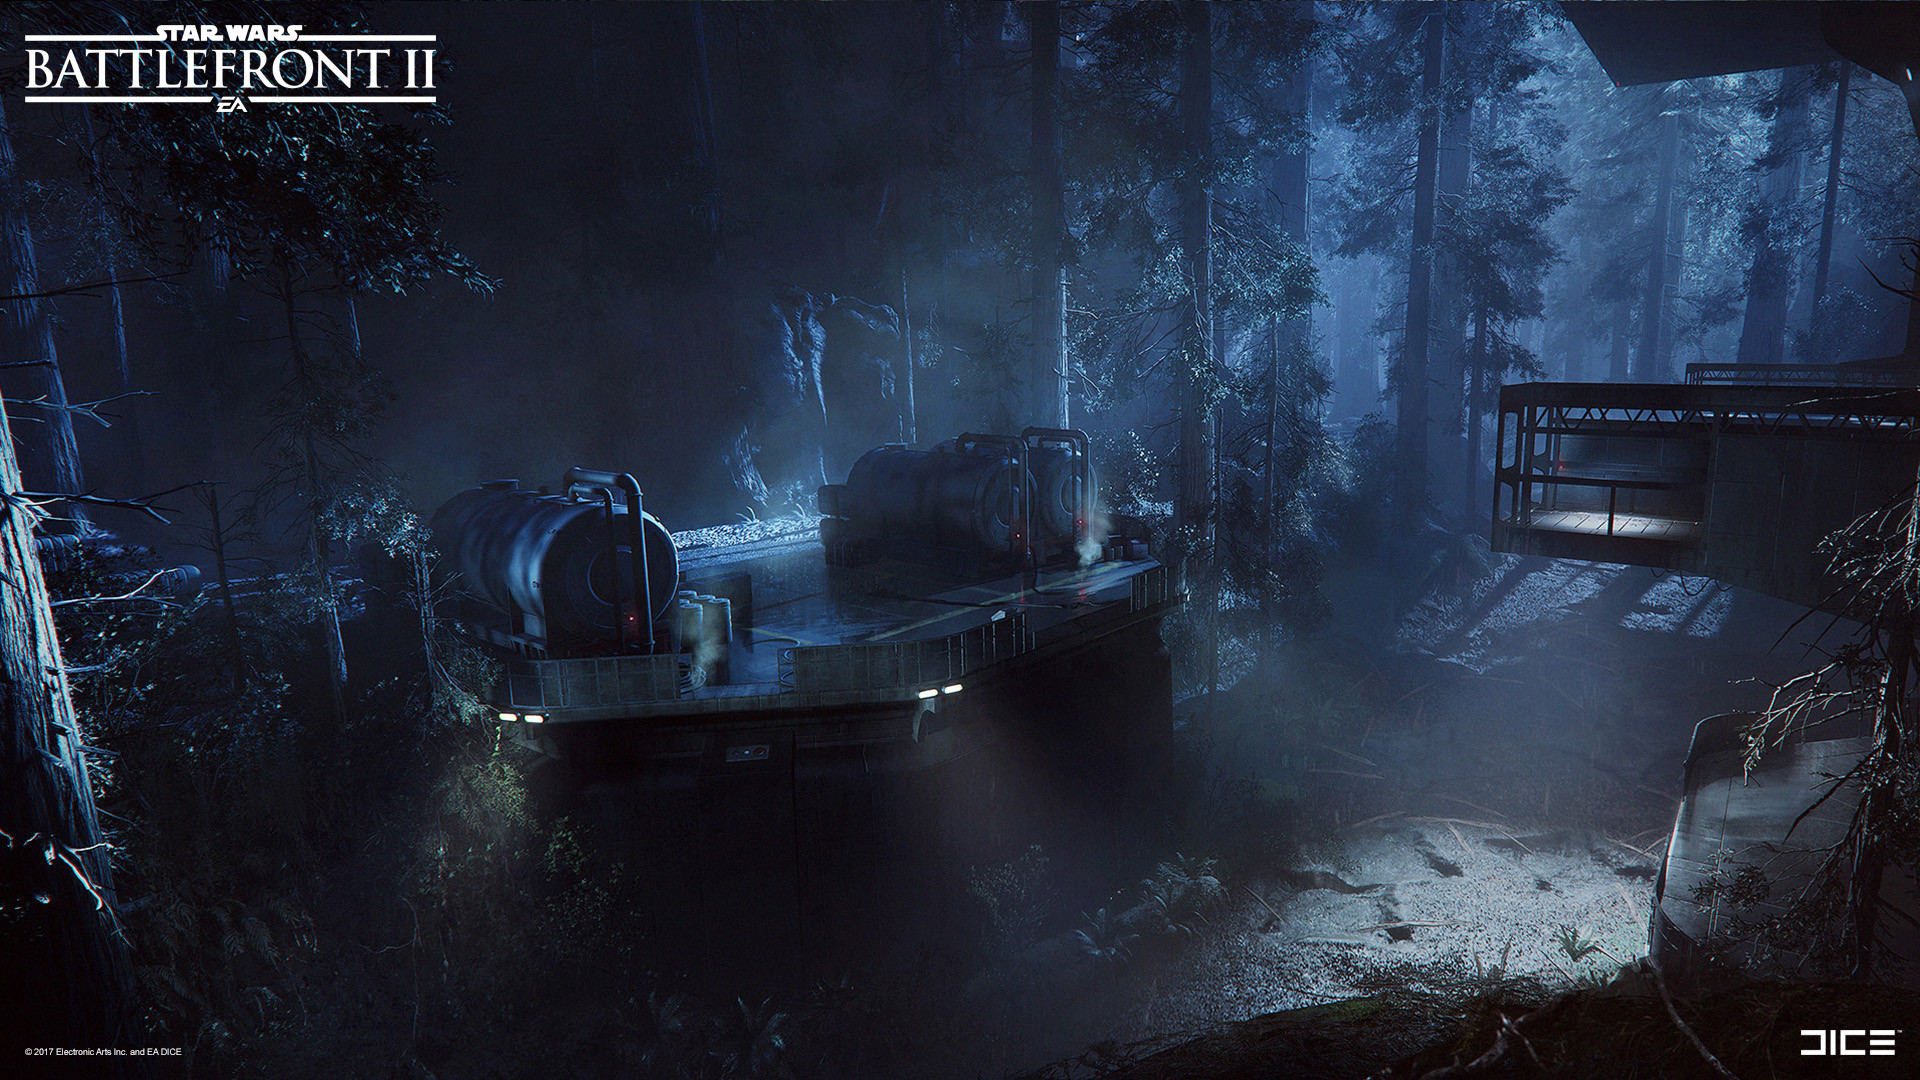 Star Wars Battlefront II Concept art - Forest Moon of Endor